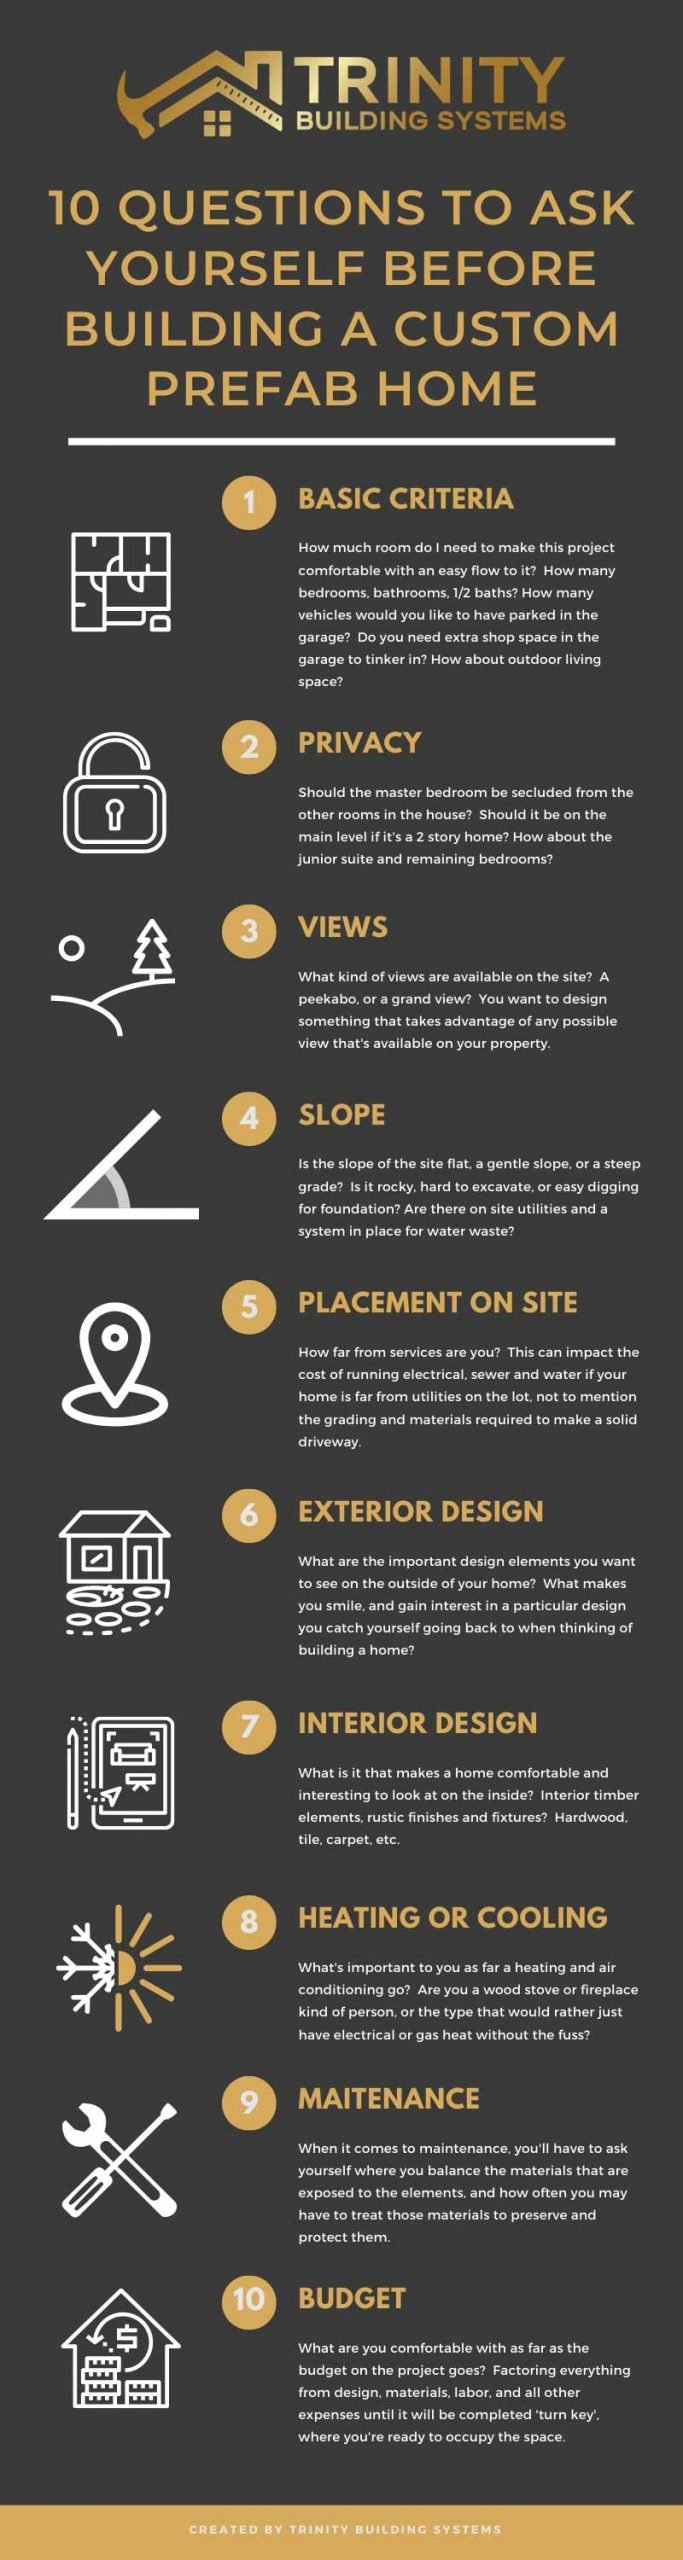 Trinity Building Systems 10 Questions to Ask Before Building a Prefab Home Infographic